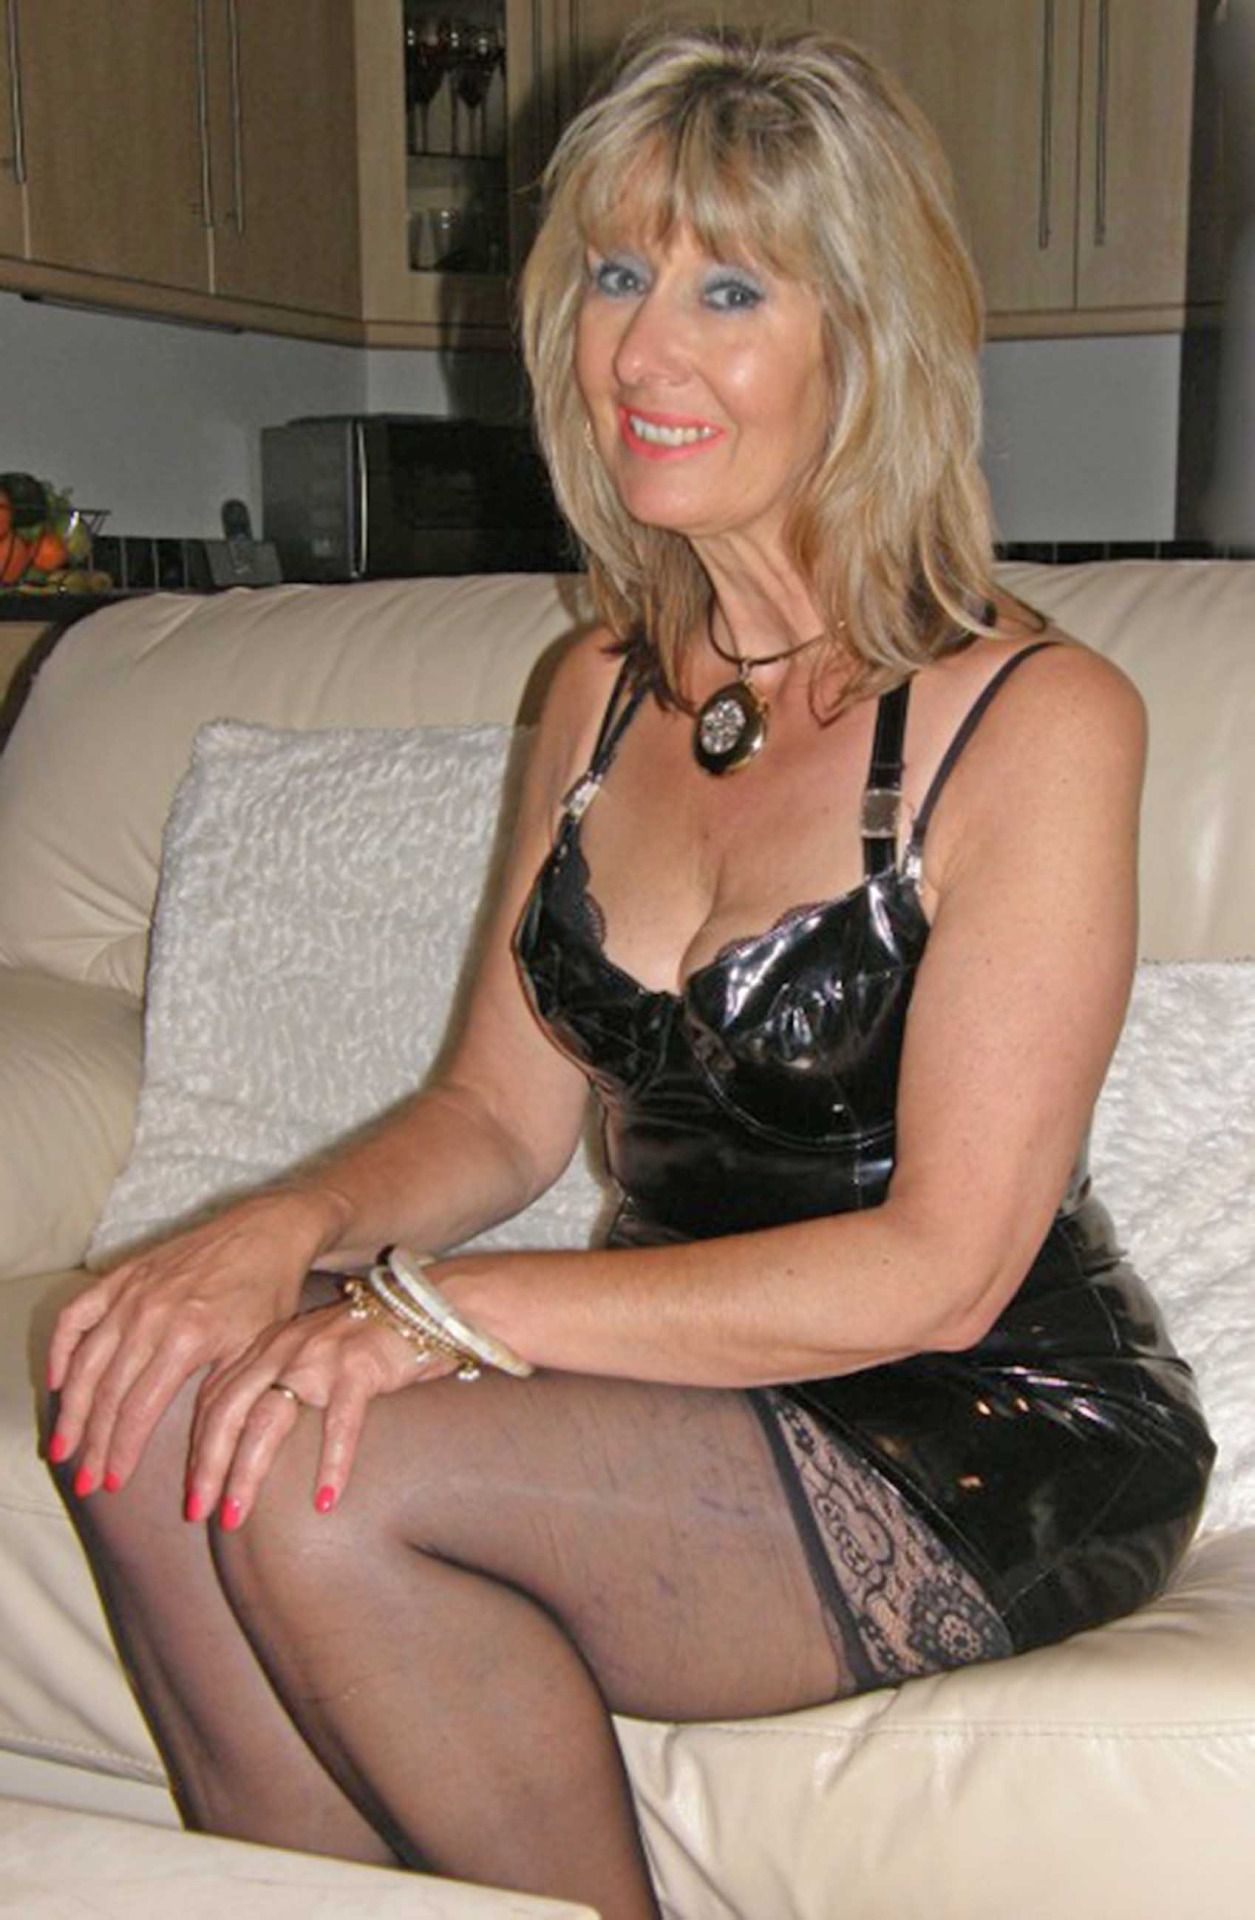 gilf posing | oh my my | pinterest | nylons heels and stockings